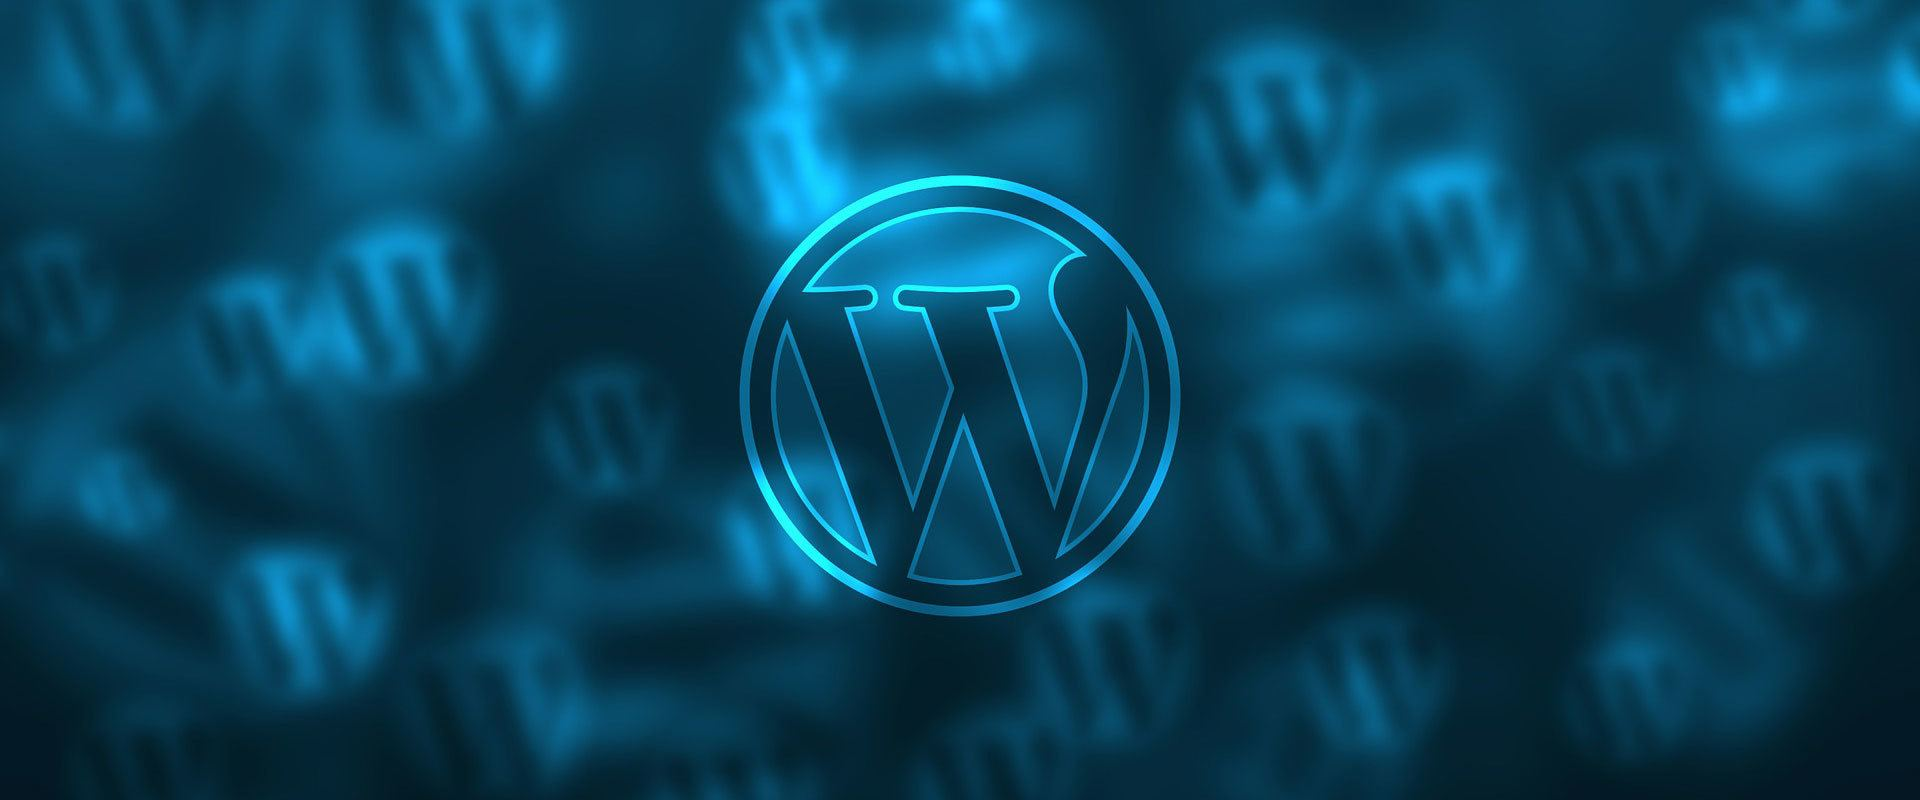 10 Reasons To Use WordPress For Your Website